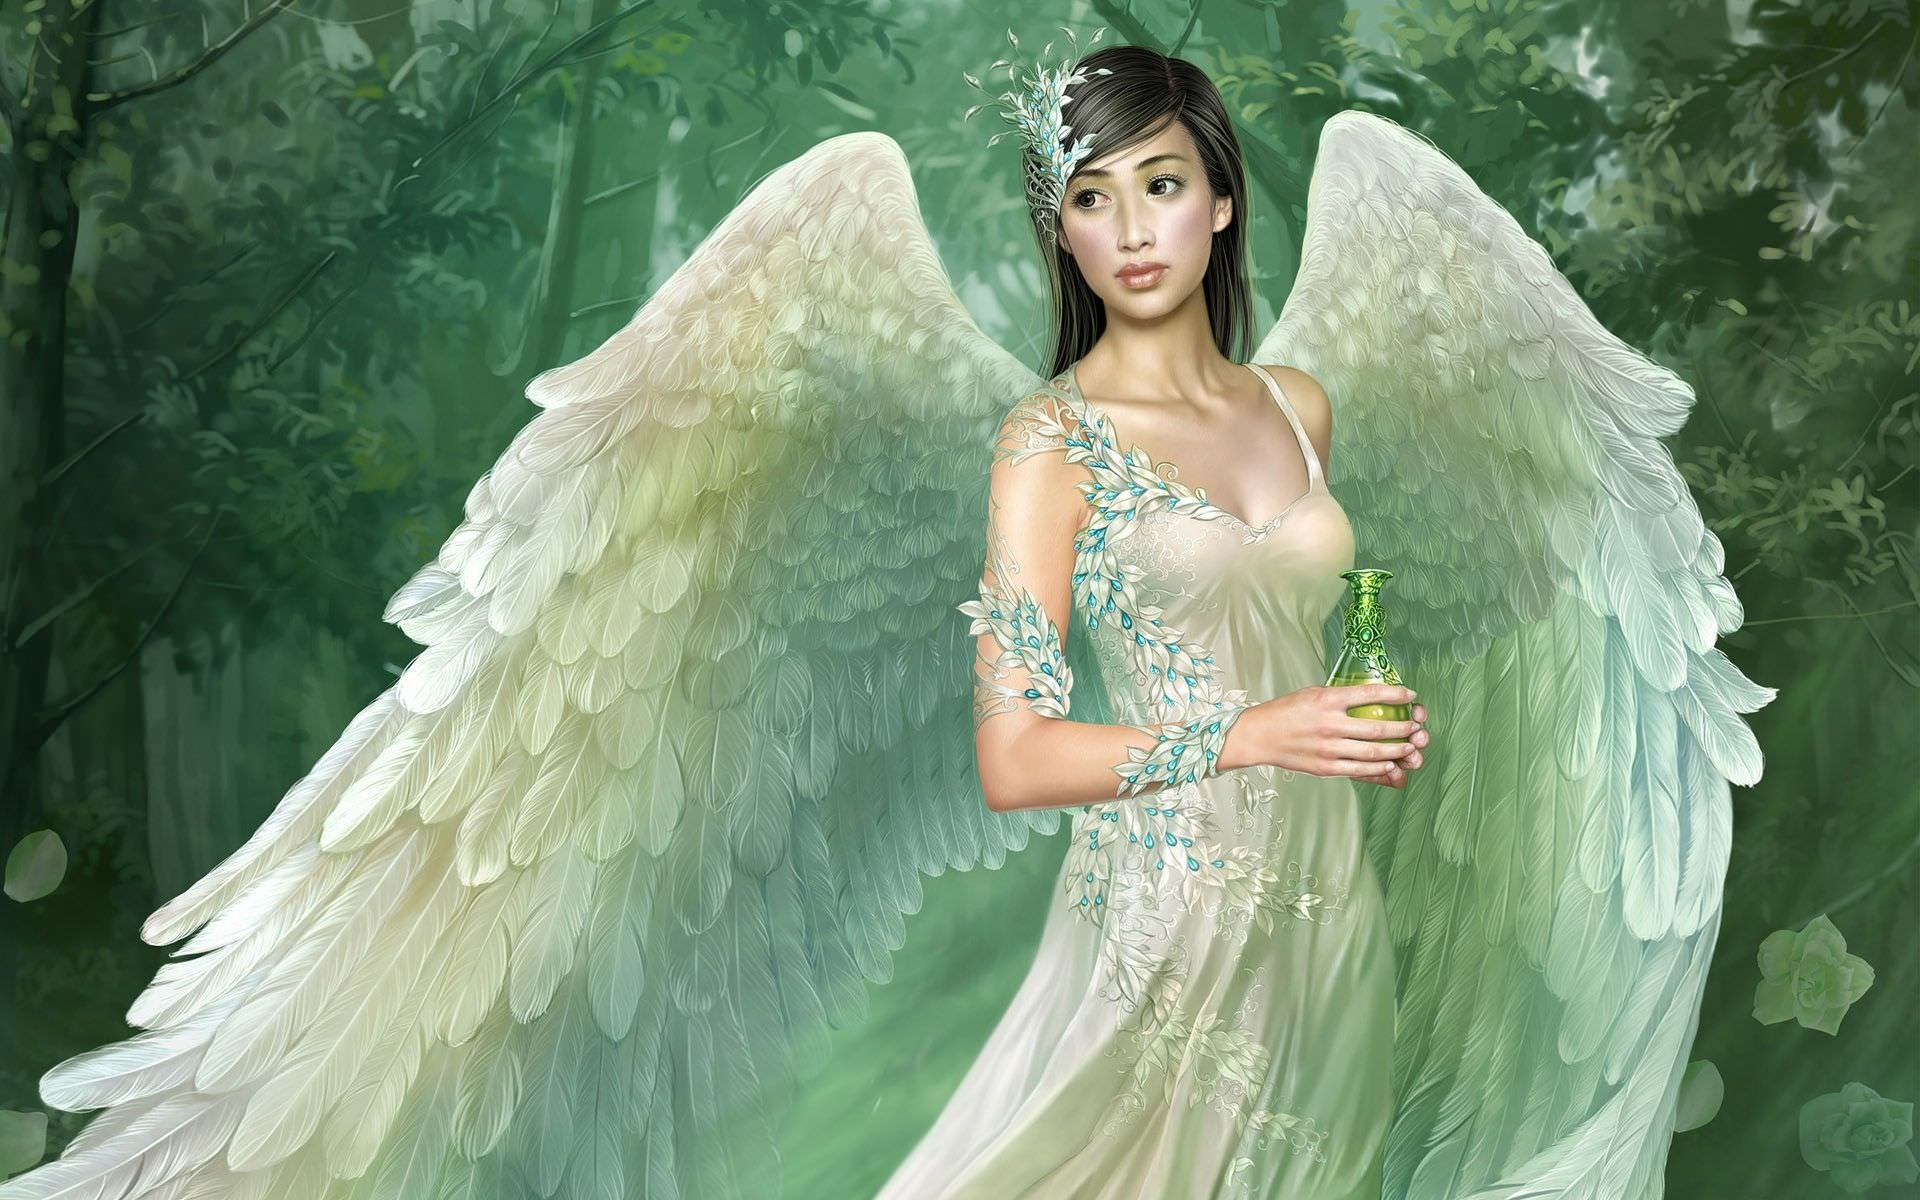 Awesome Real Fairy Wallpaper